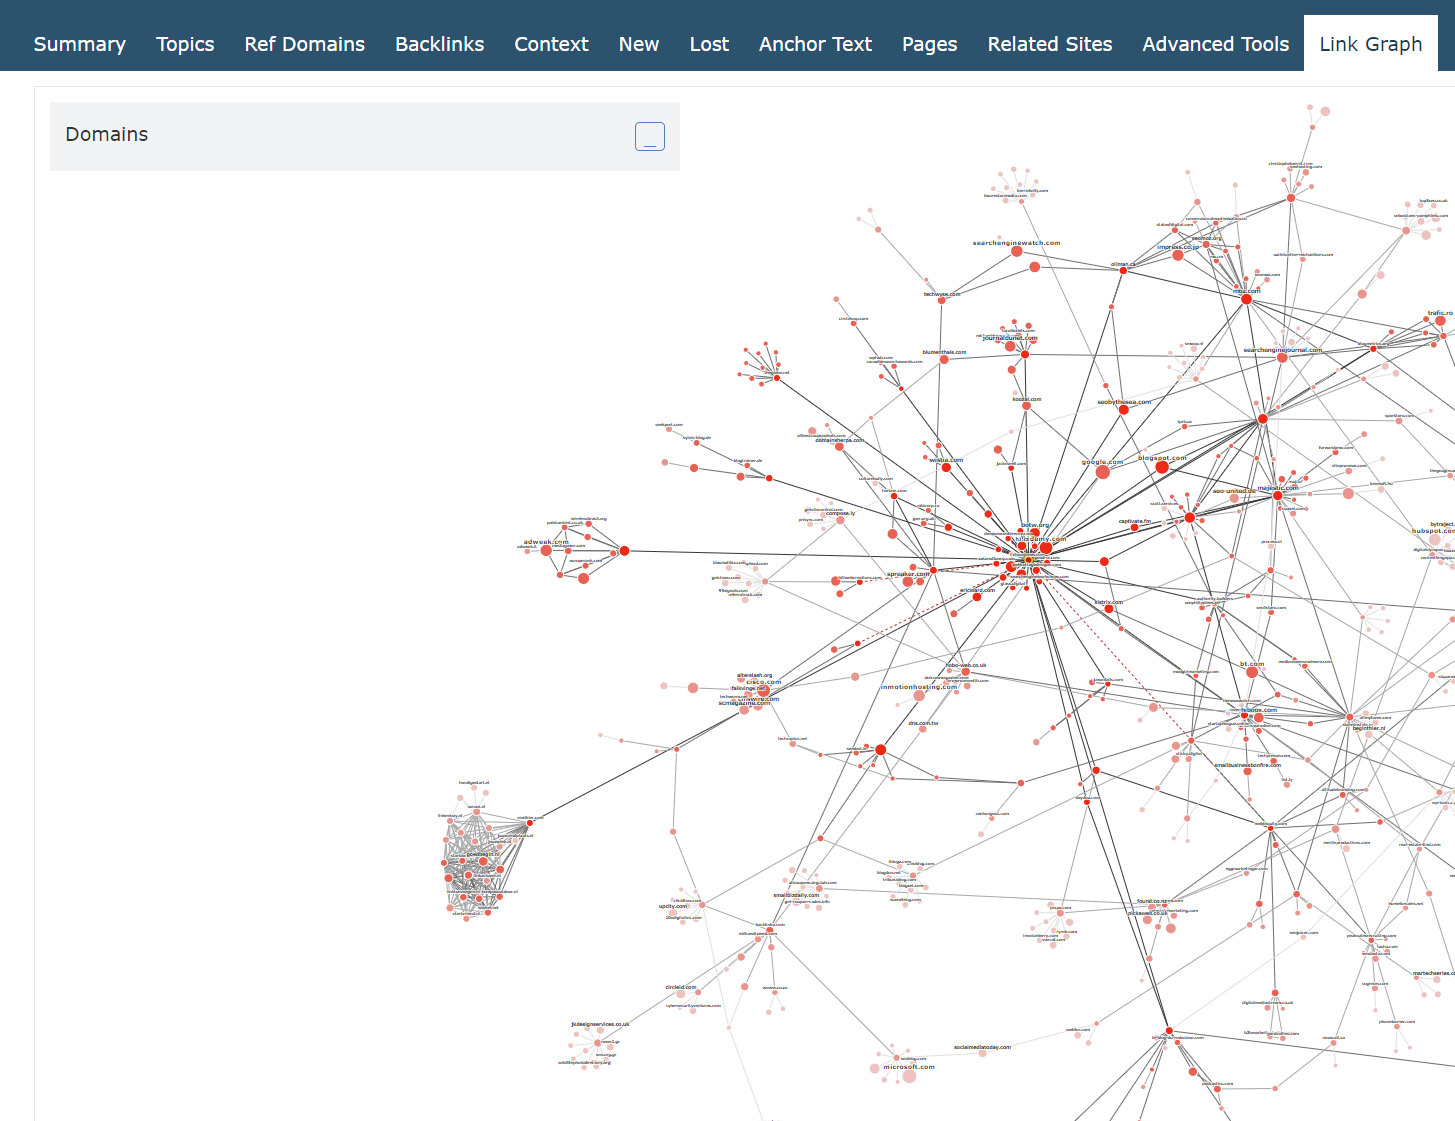 An image showing the 'Domains' panel top-left in the Link Graph